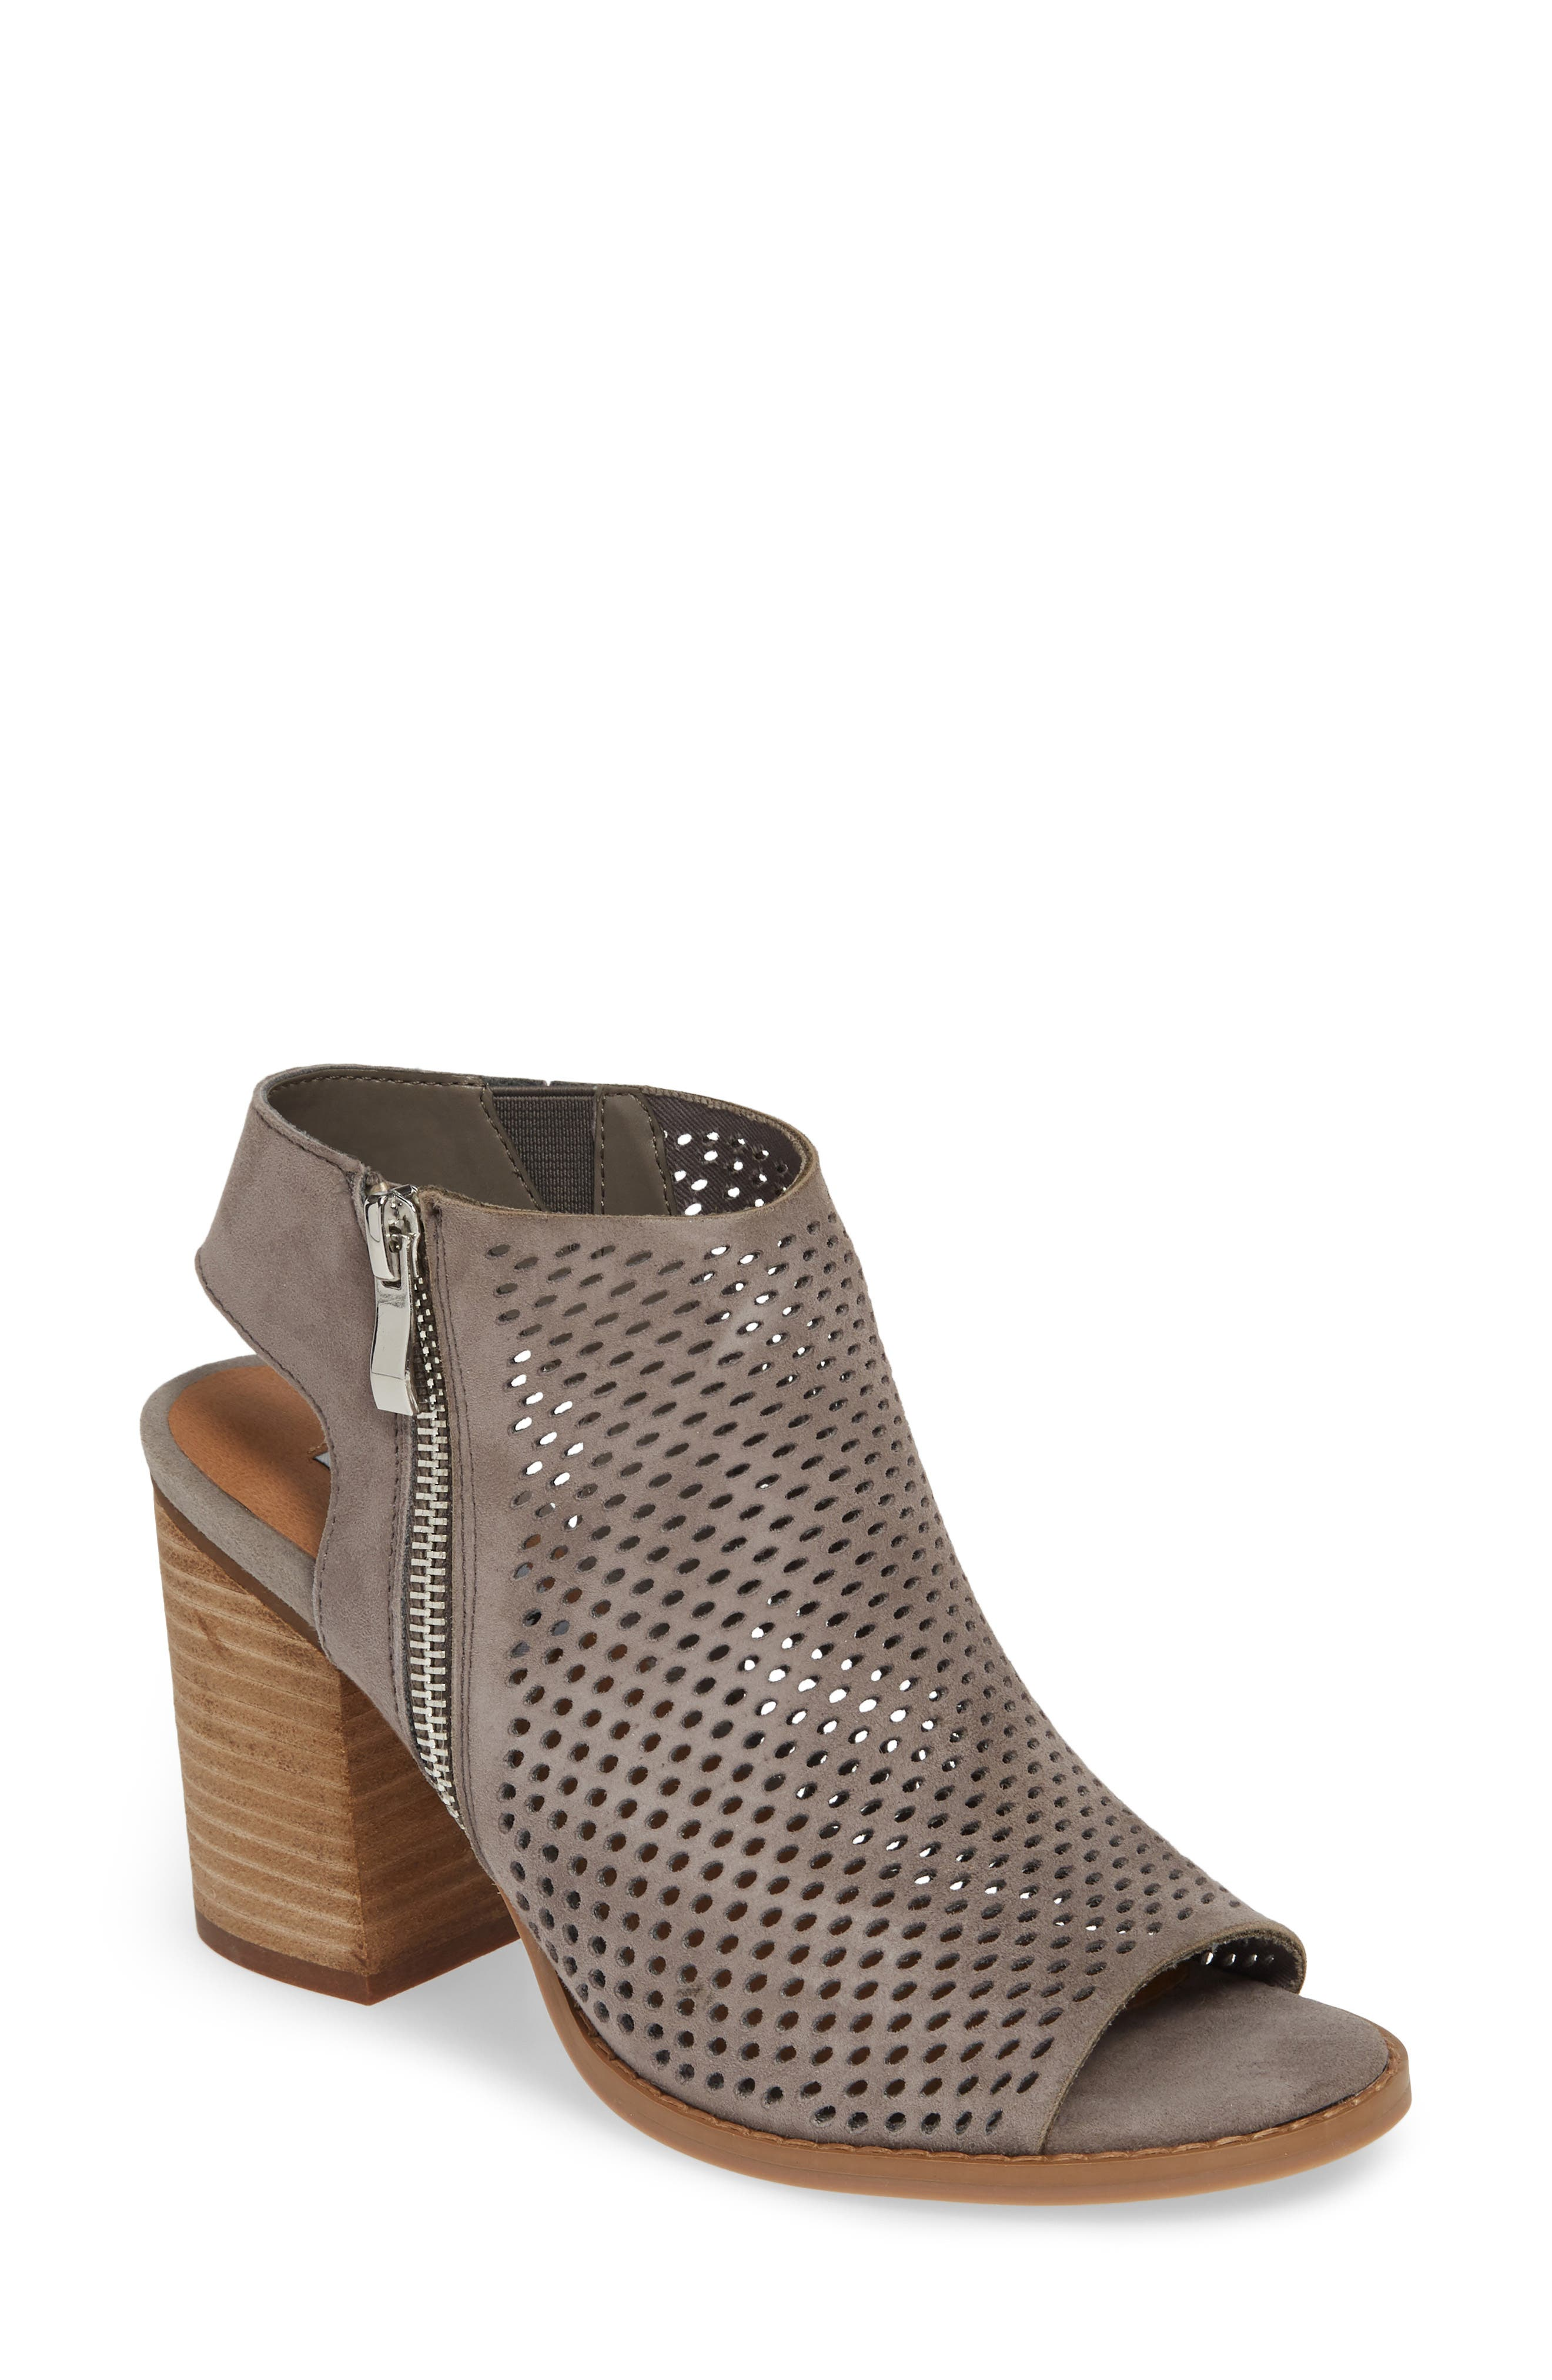 Steve Madden Abigail Perforated Bootie- Grey